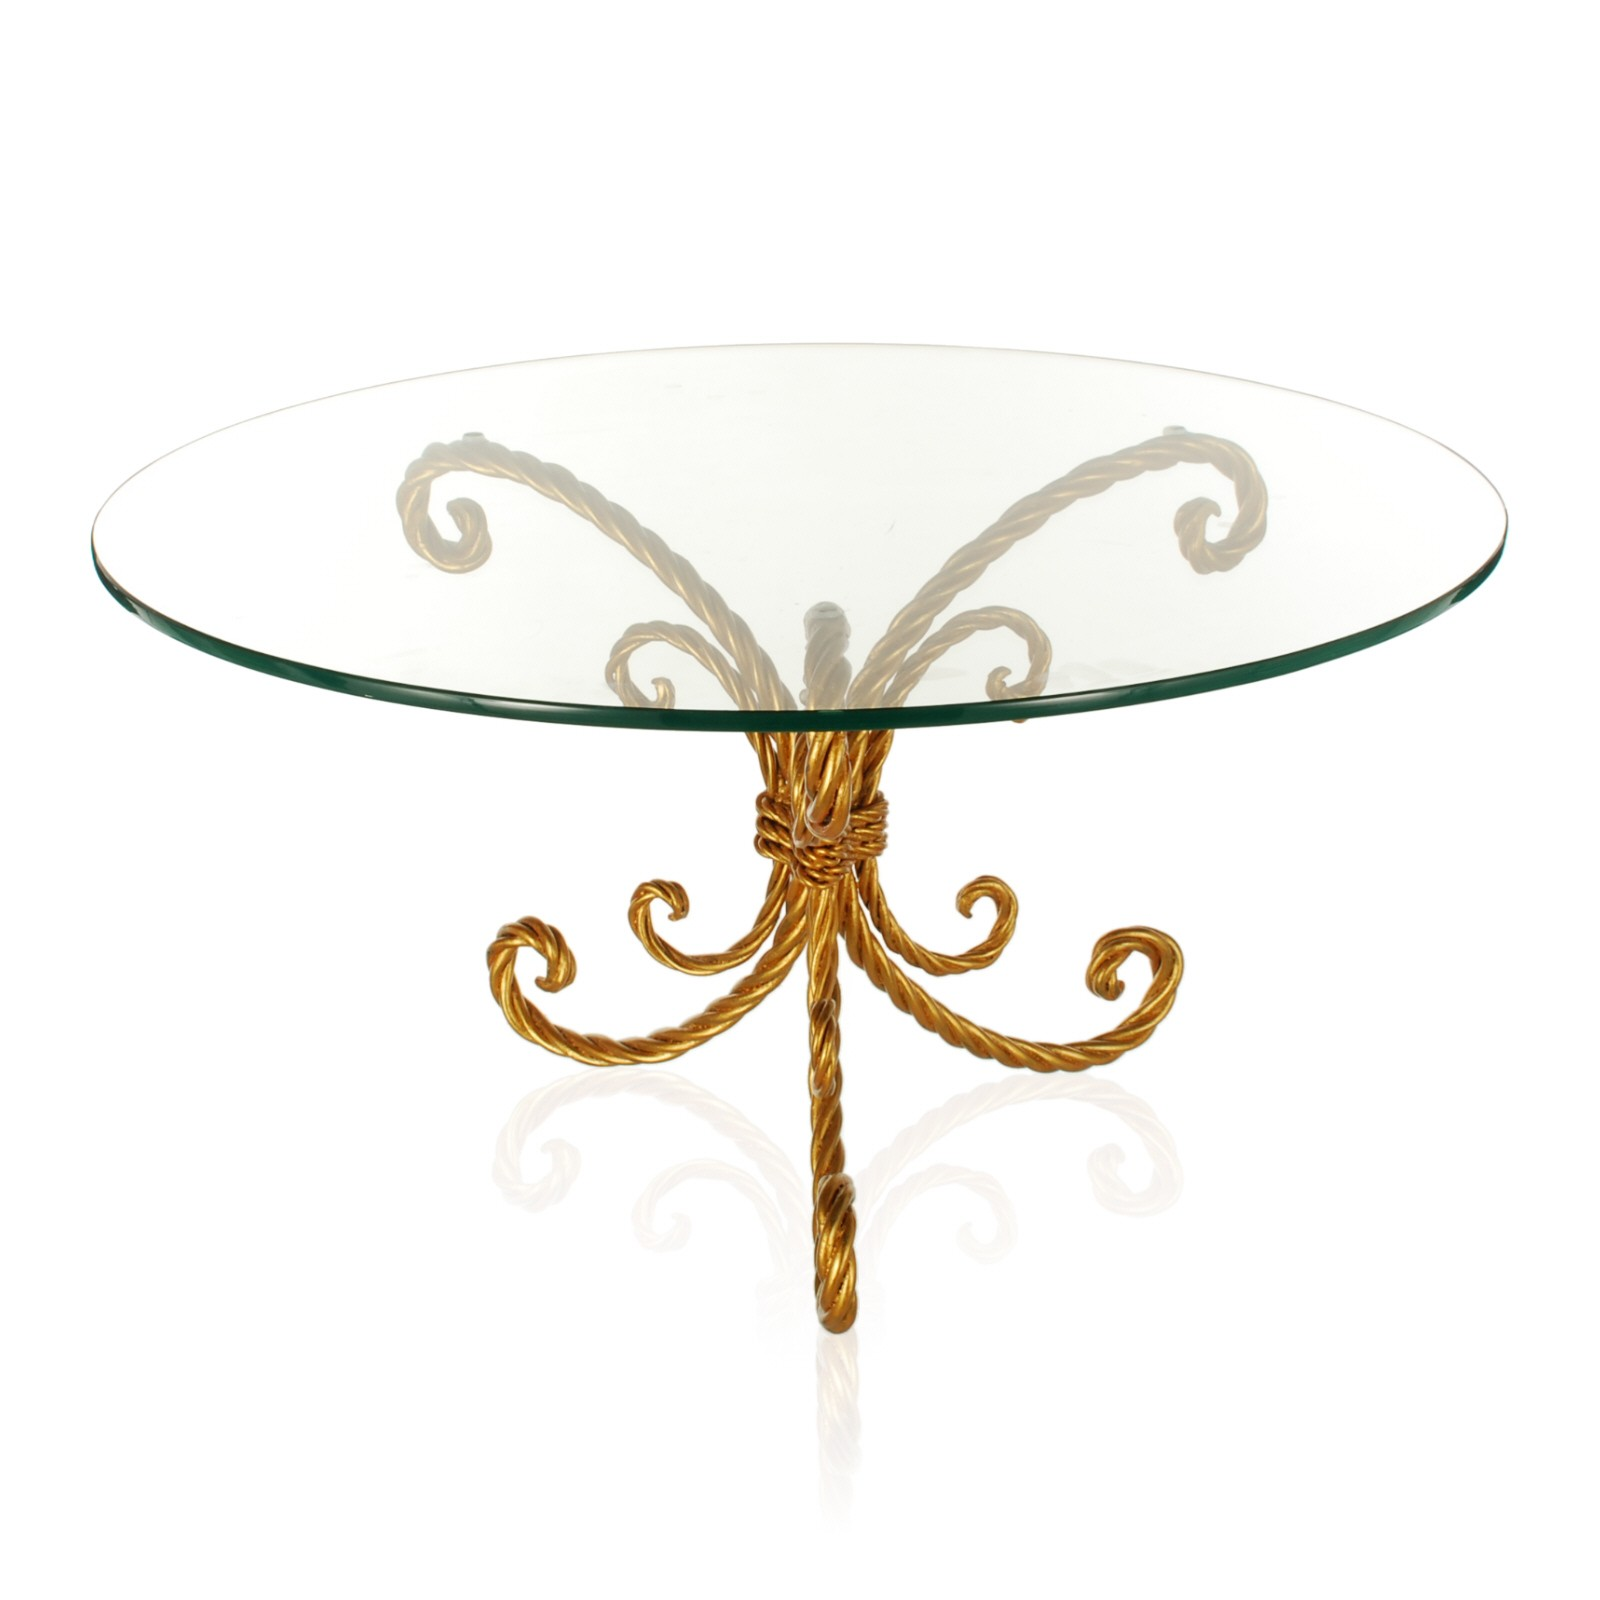 Elegant Glass Top Coffee Table Rustic Meets Elegant In This Spherical Rare Vintage Retro 60s A Younger (View 9 of 11)